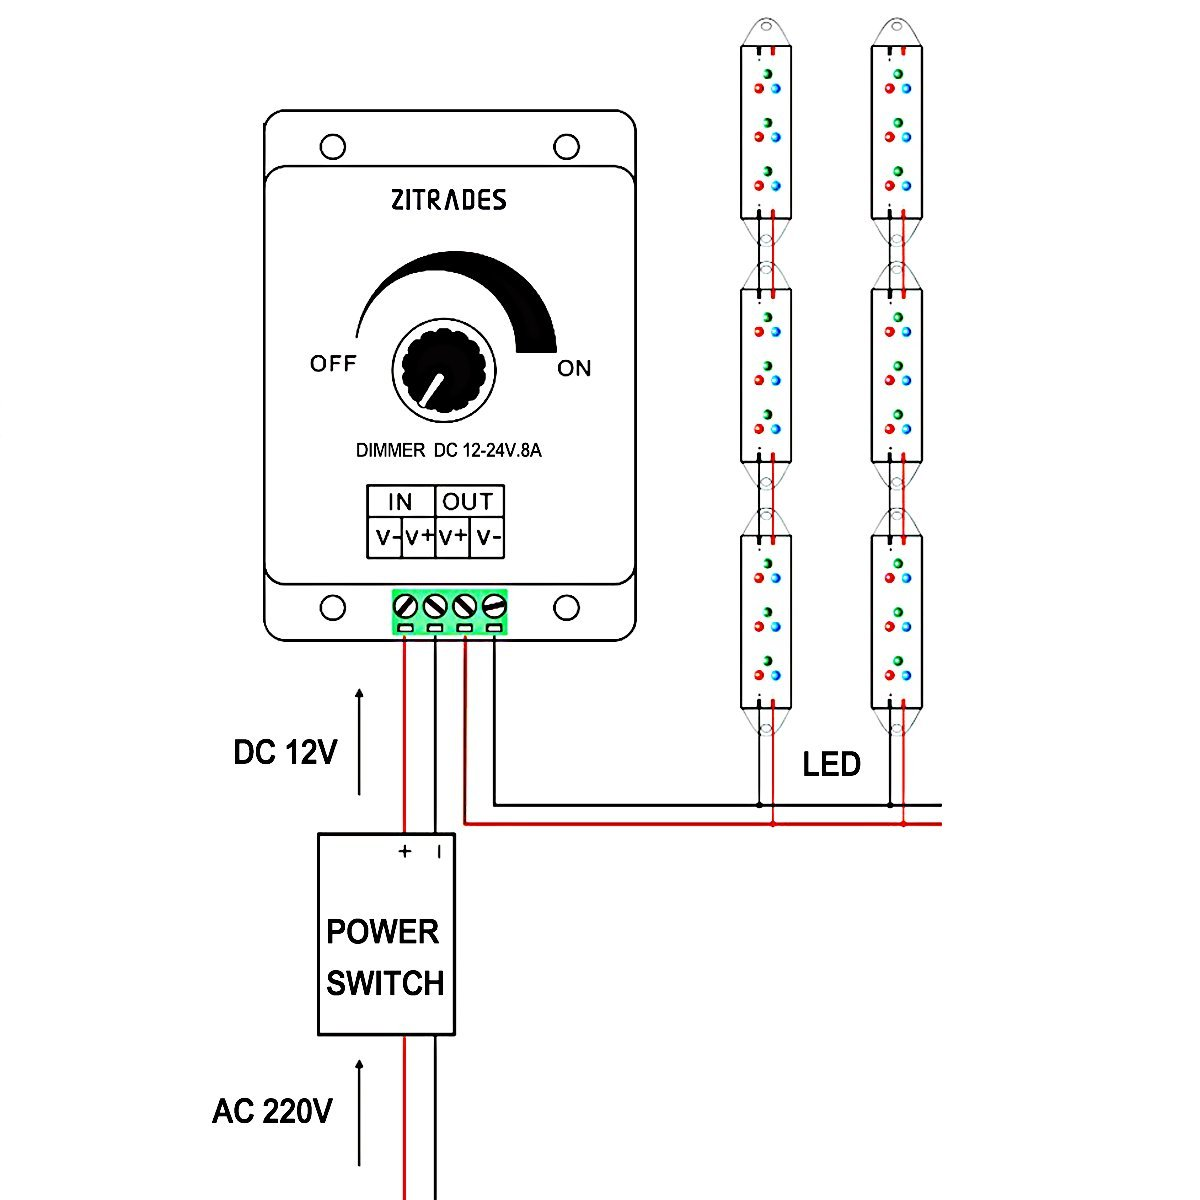 lutron dimmer switch hook up Watch more home decor & lighting videos: how many handymen does it take to install a dimme.